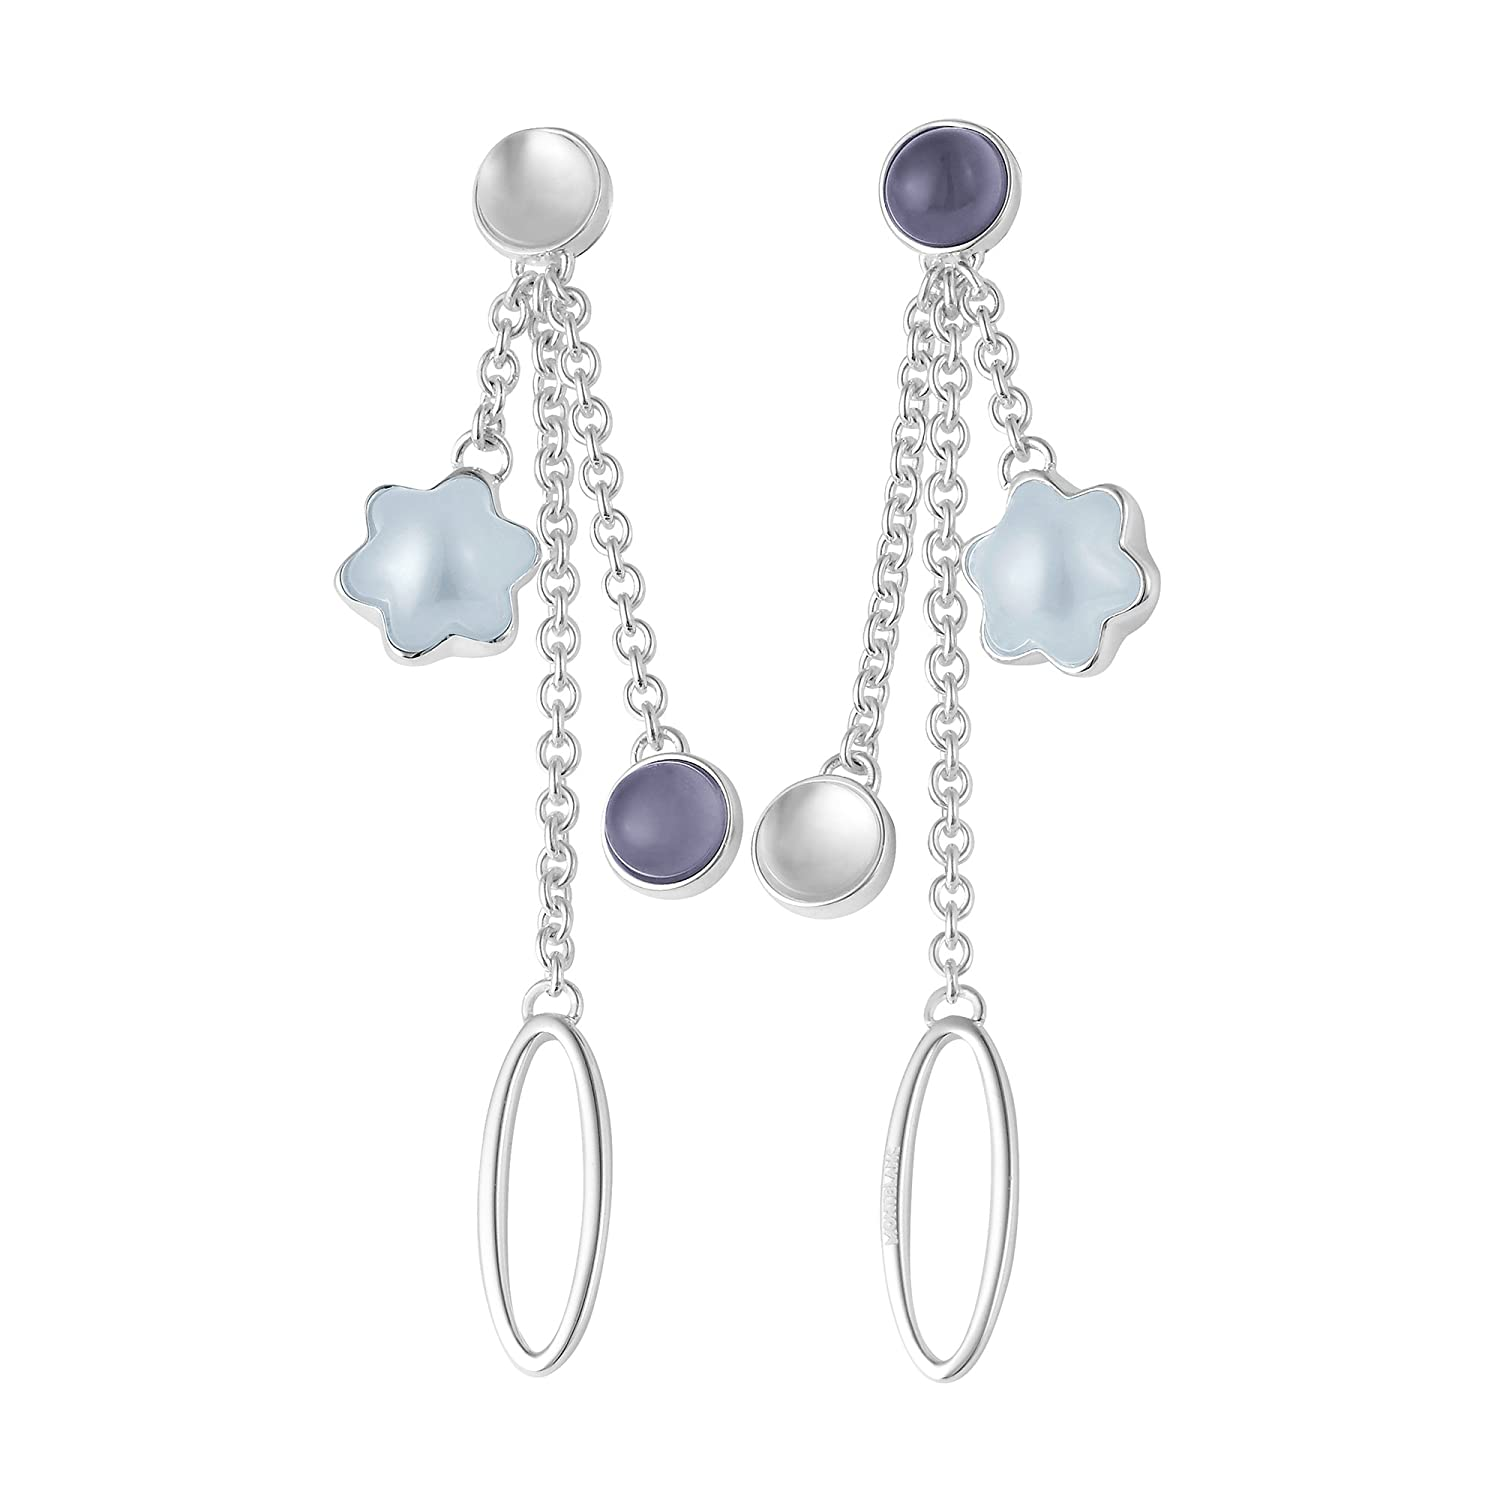 ce92c0752c8f0 Amazon.com: Montblanc 106872 Cabochon Sterling Silver 925 Earrings: Jewelry